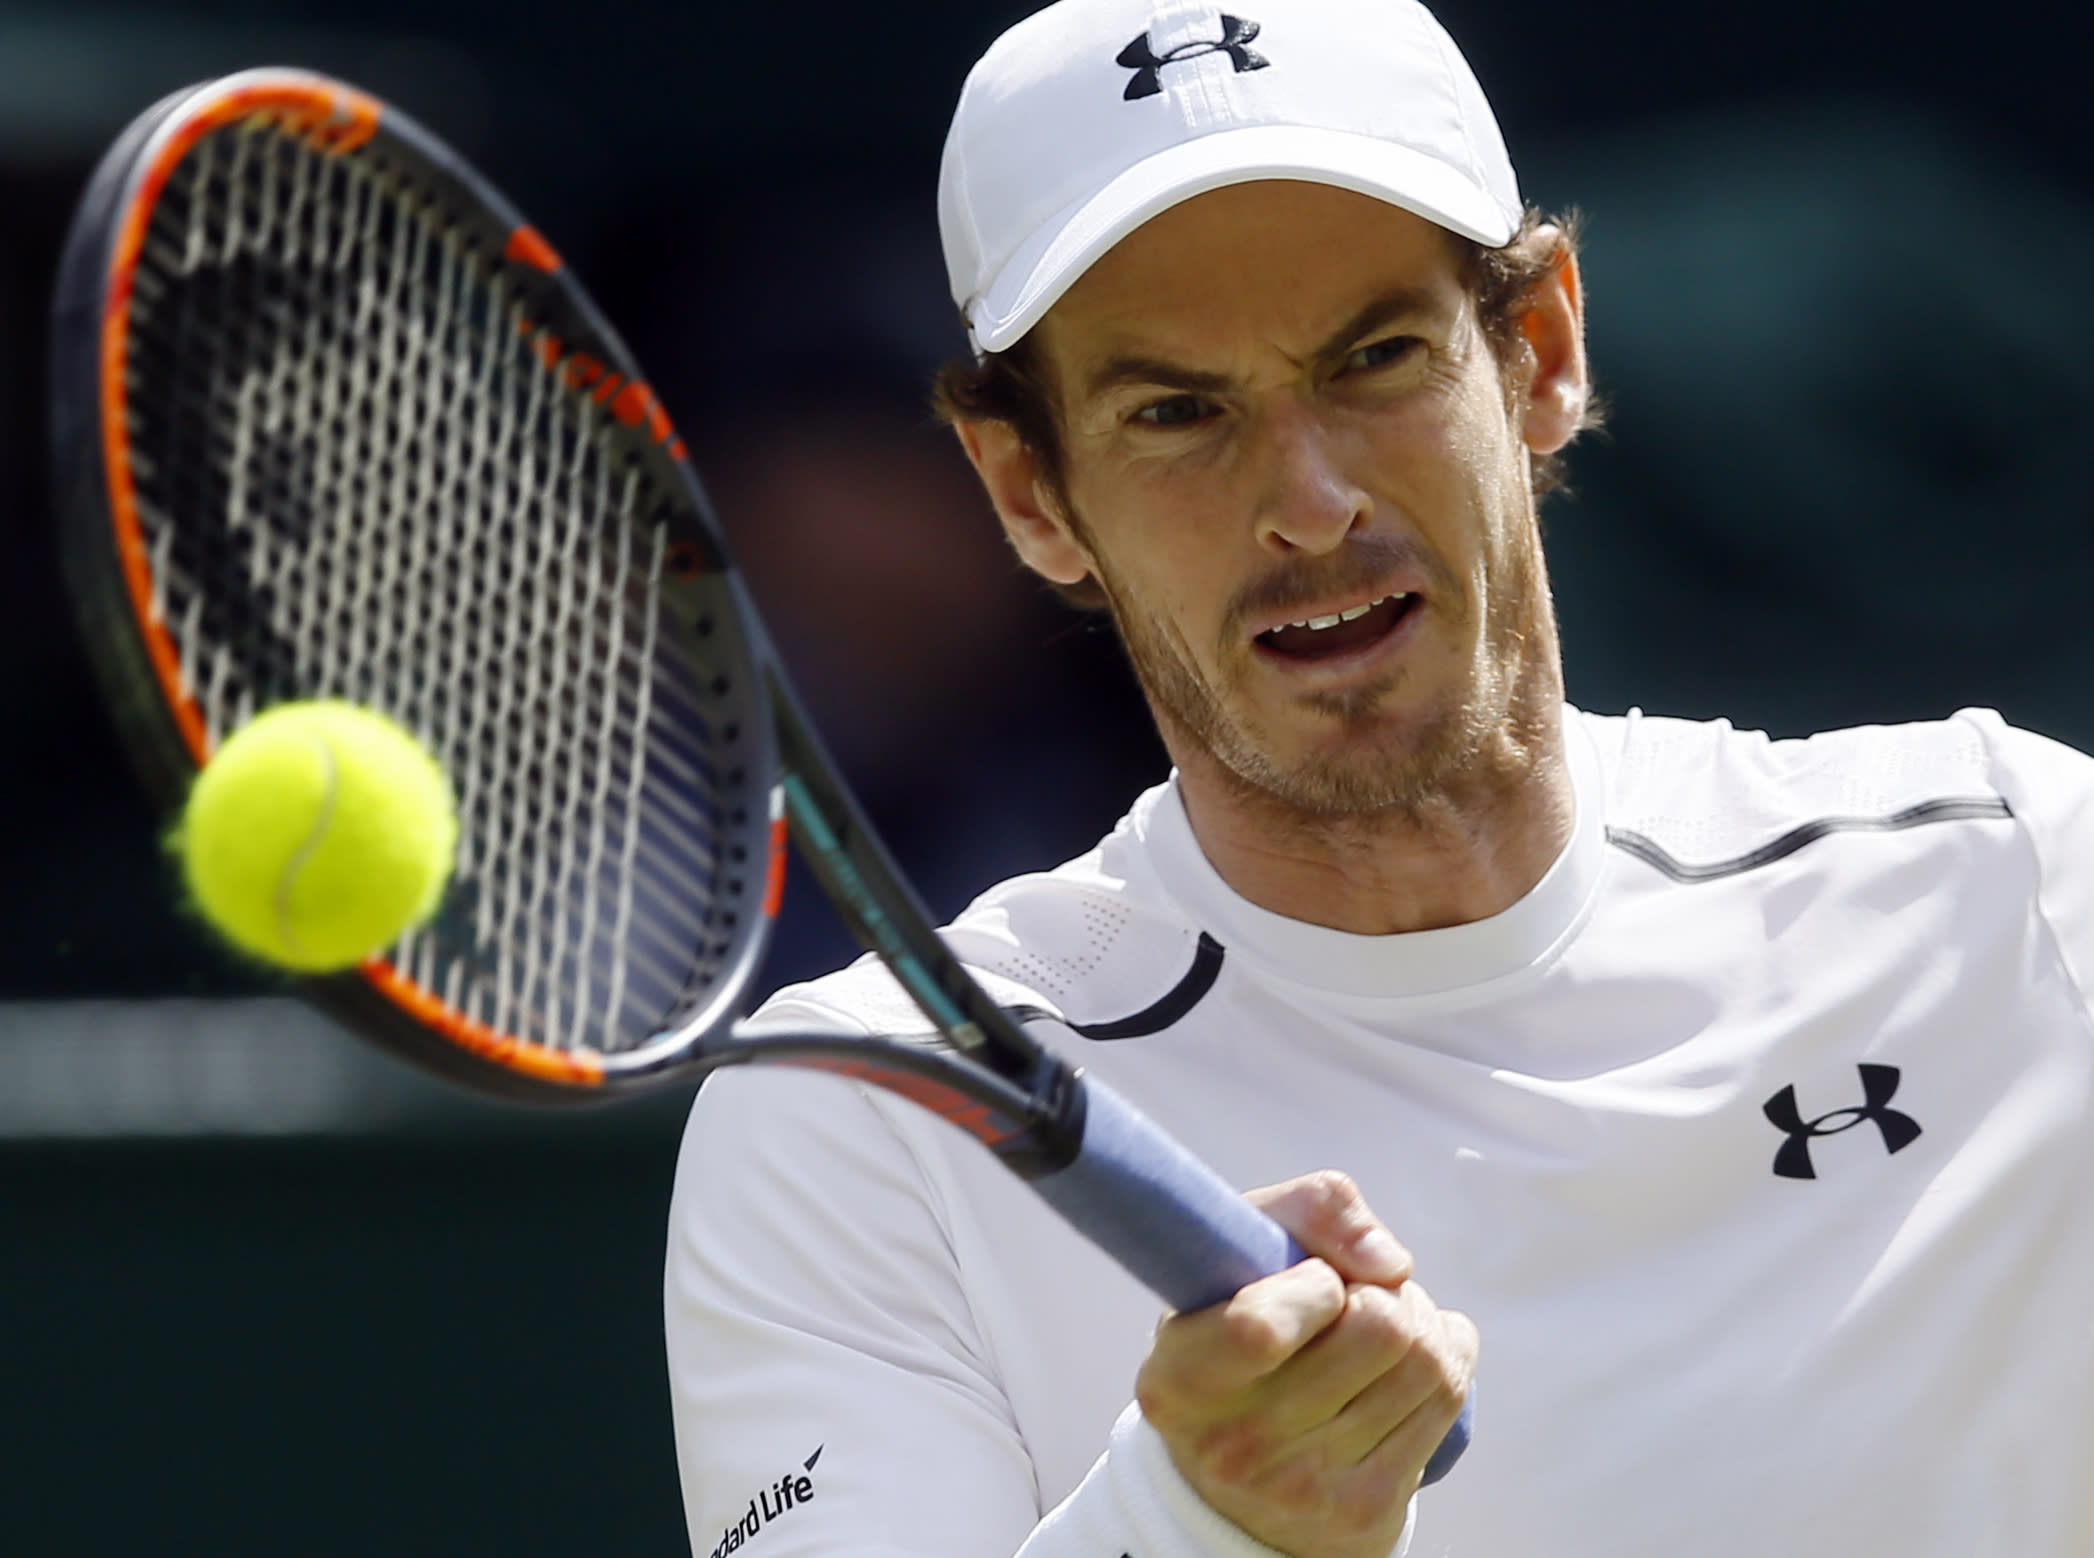 Andy Murray hits a return.